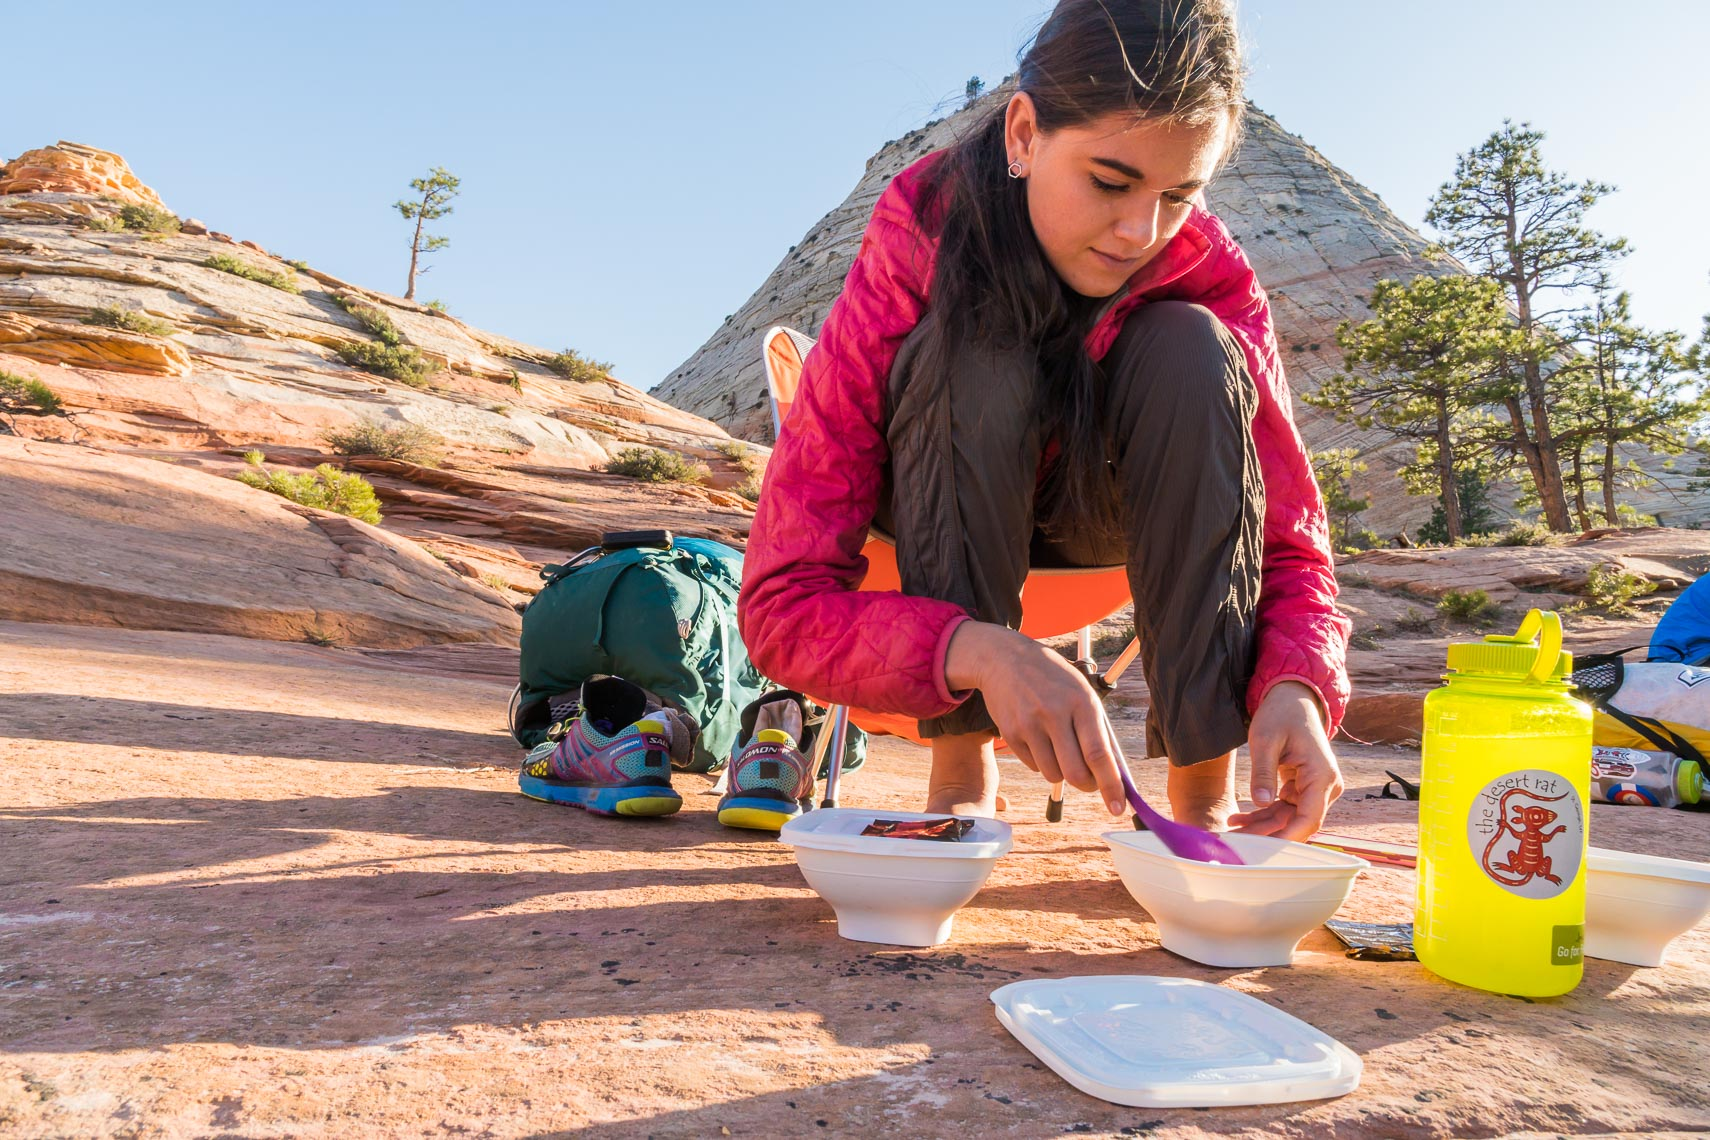 Backpacking Meal Zion Utah | Michael DeYoung